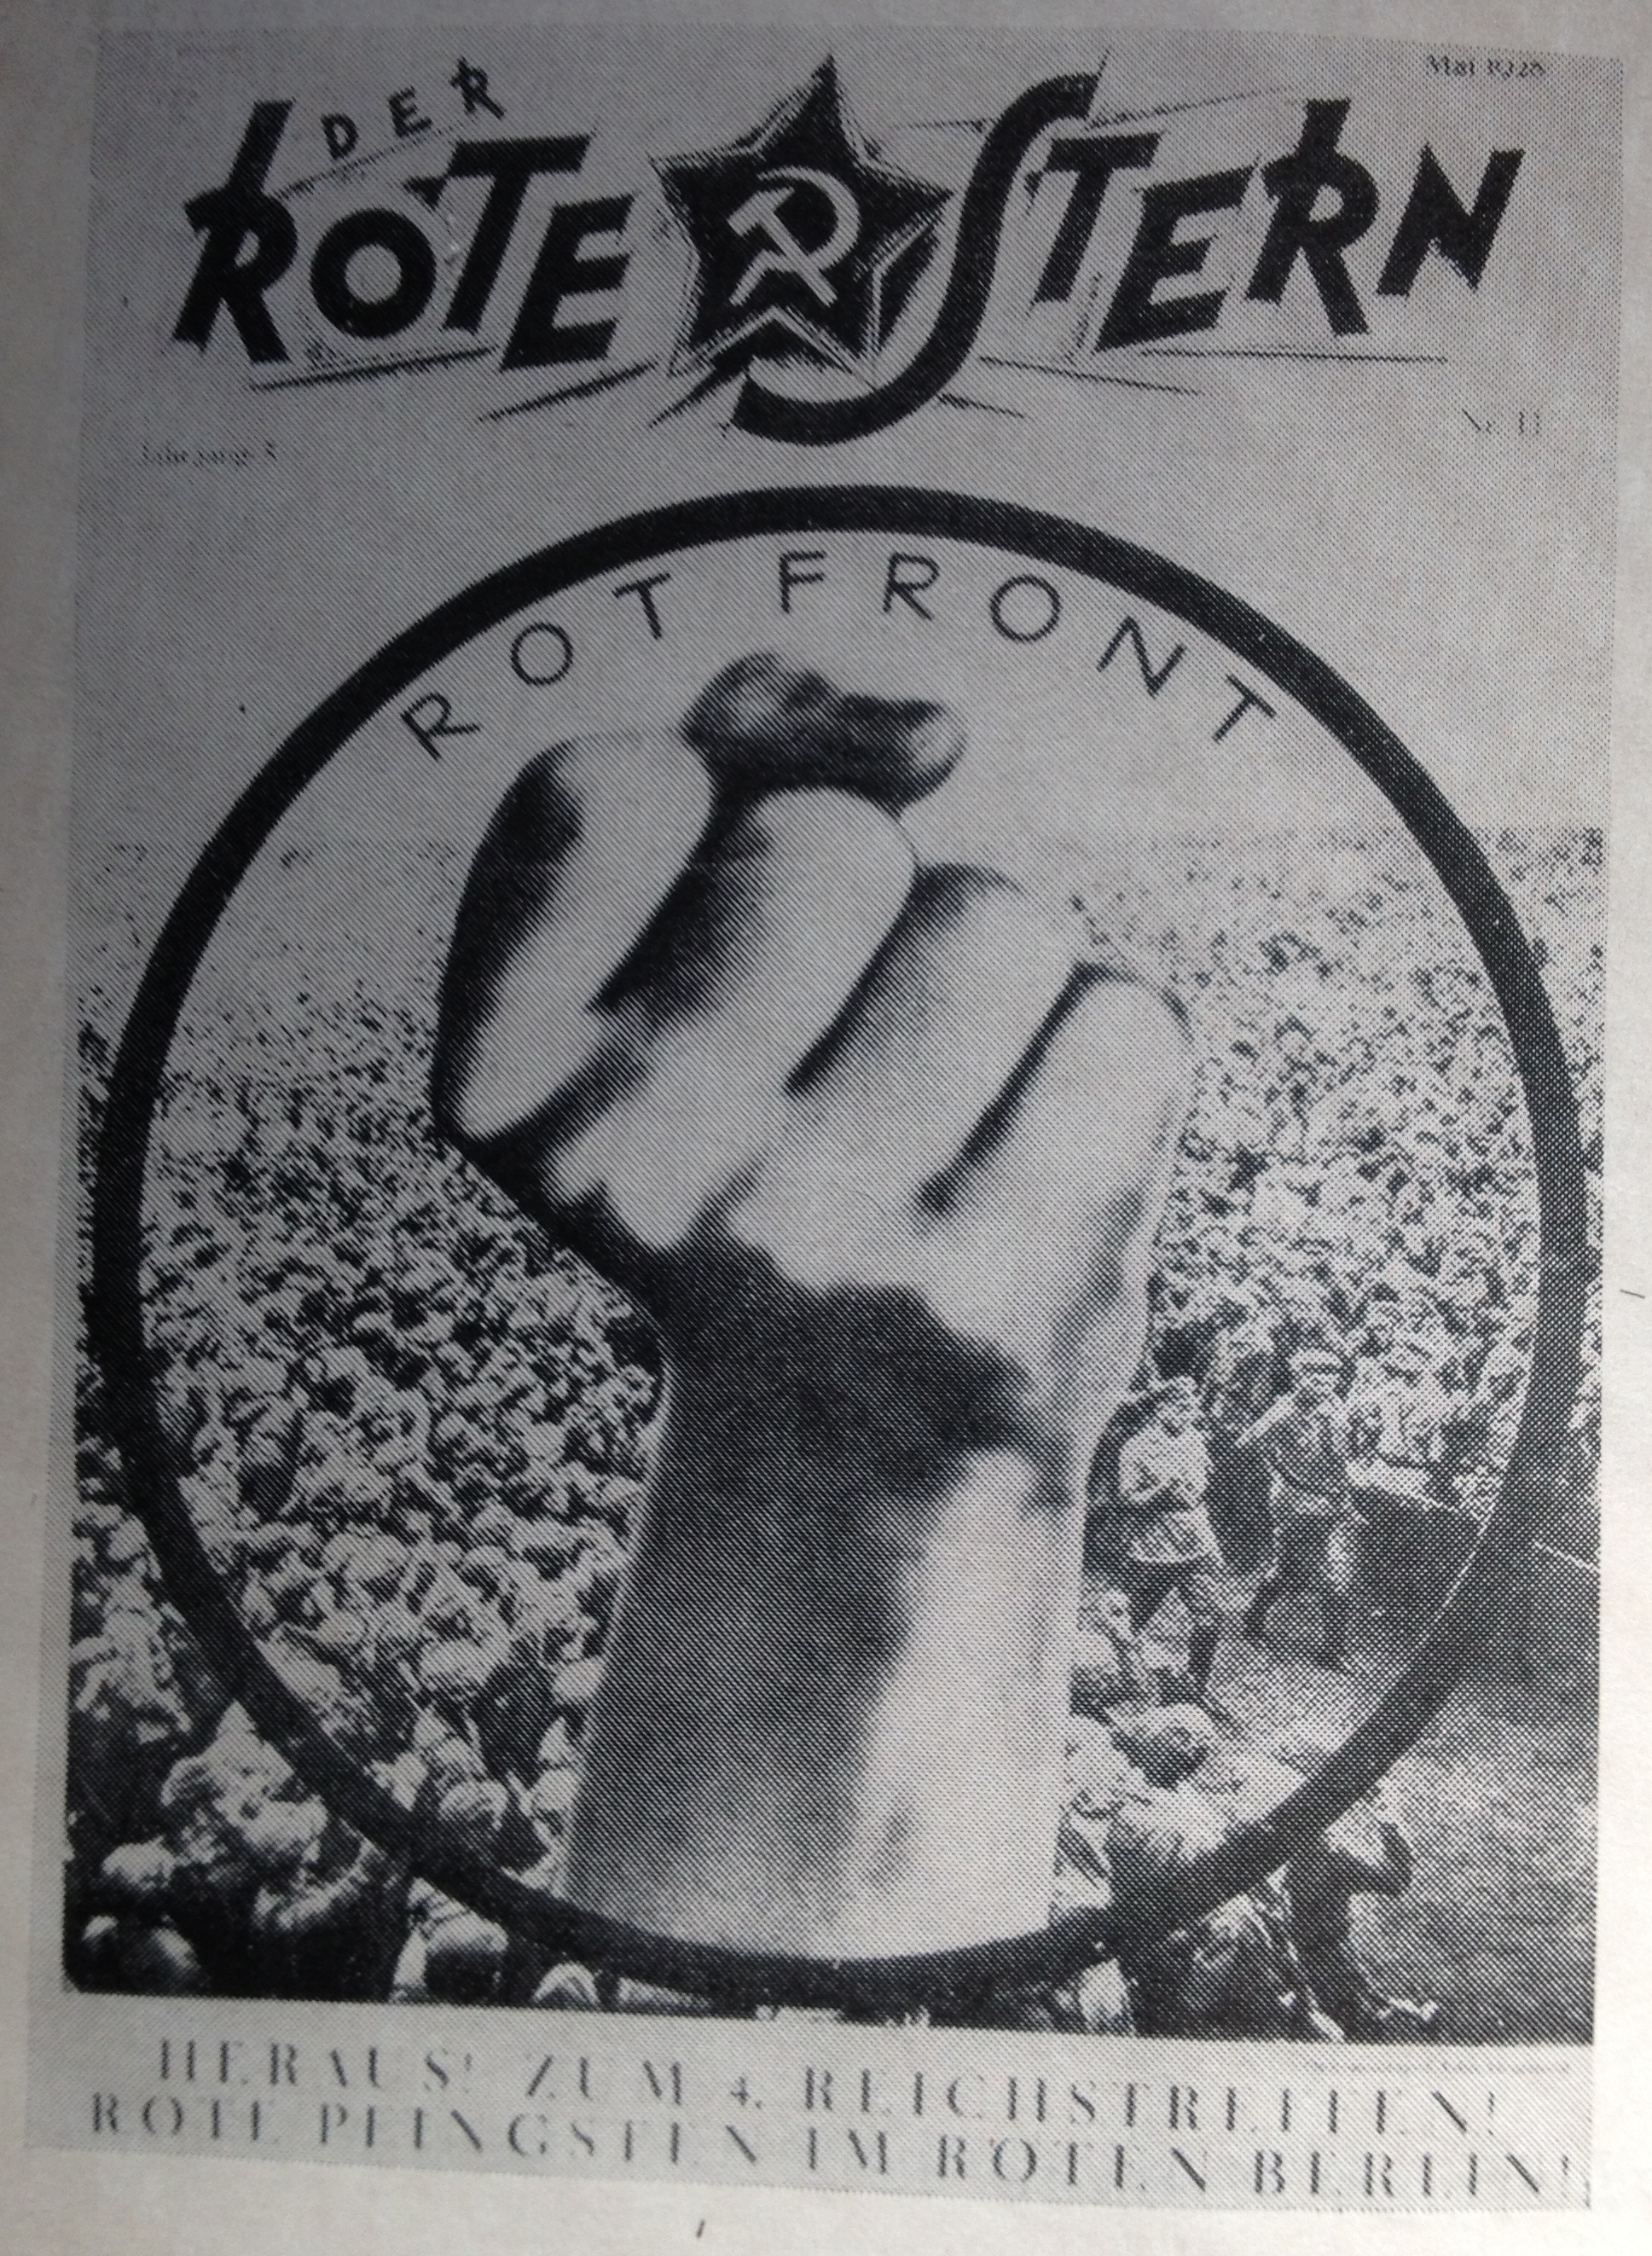 John Heartfield, Rotfront logo, cover of Der rote Stern 11 (1928).